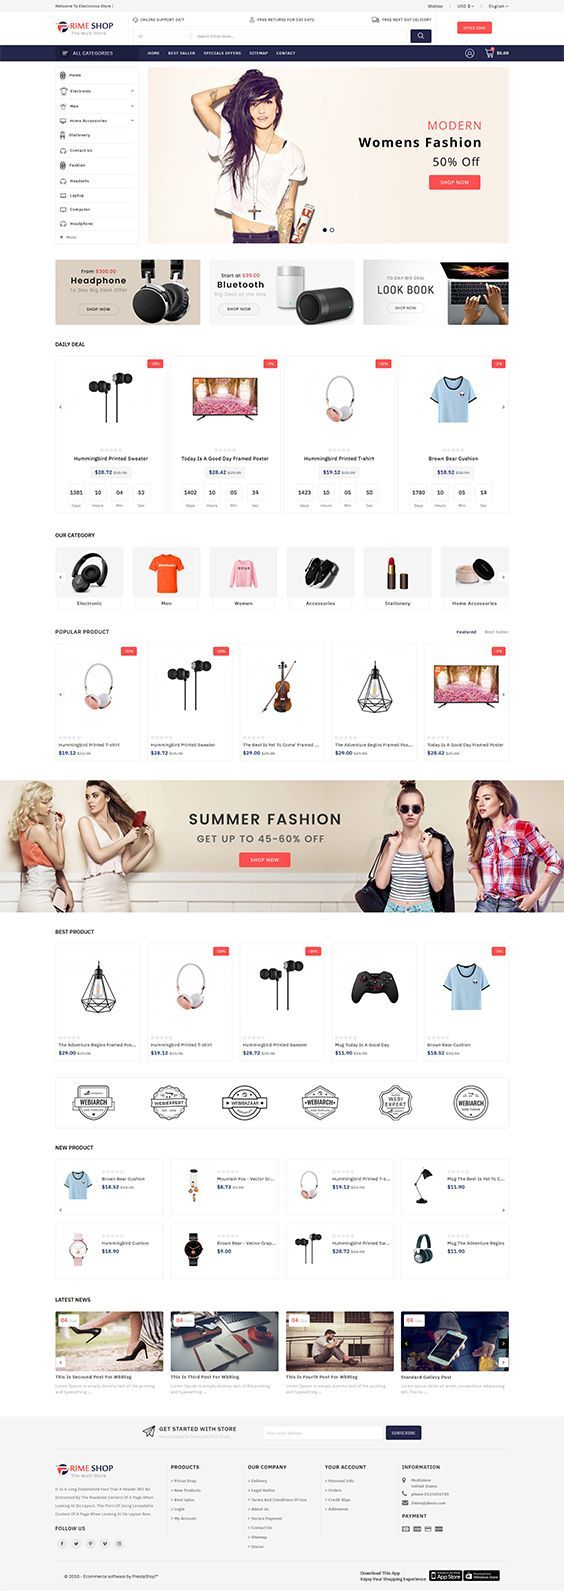 Free Room Design Tool: The Multi Store Template Is A Good Choice